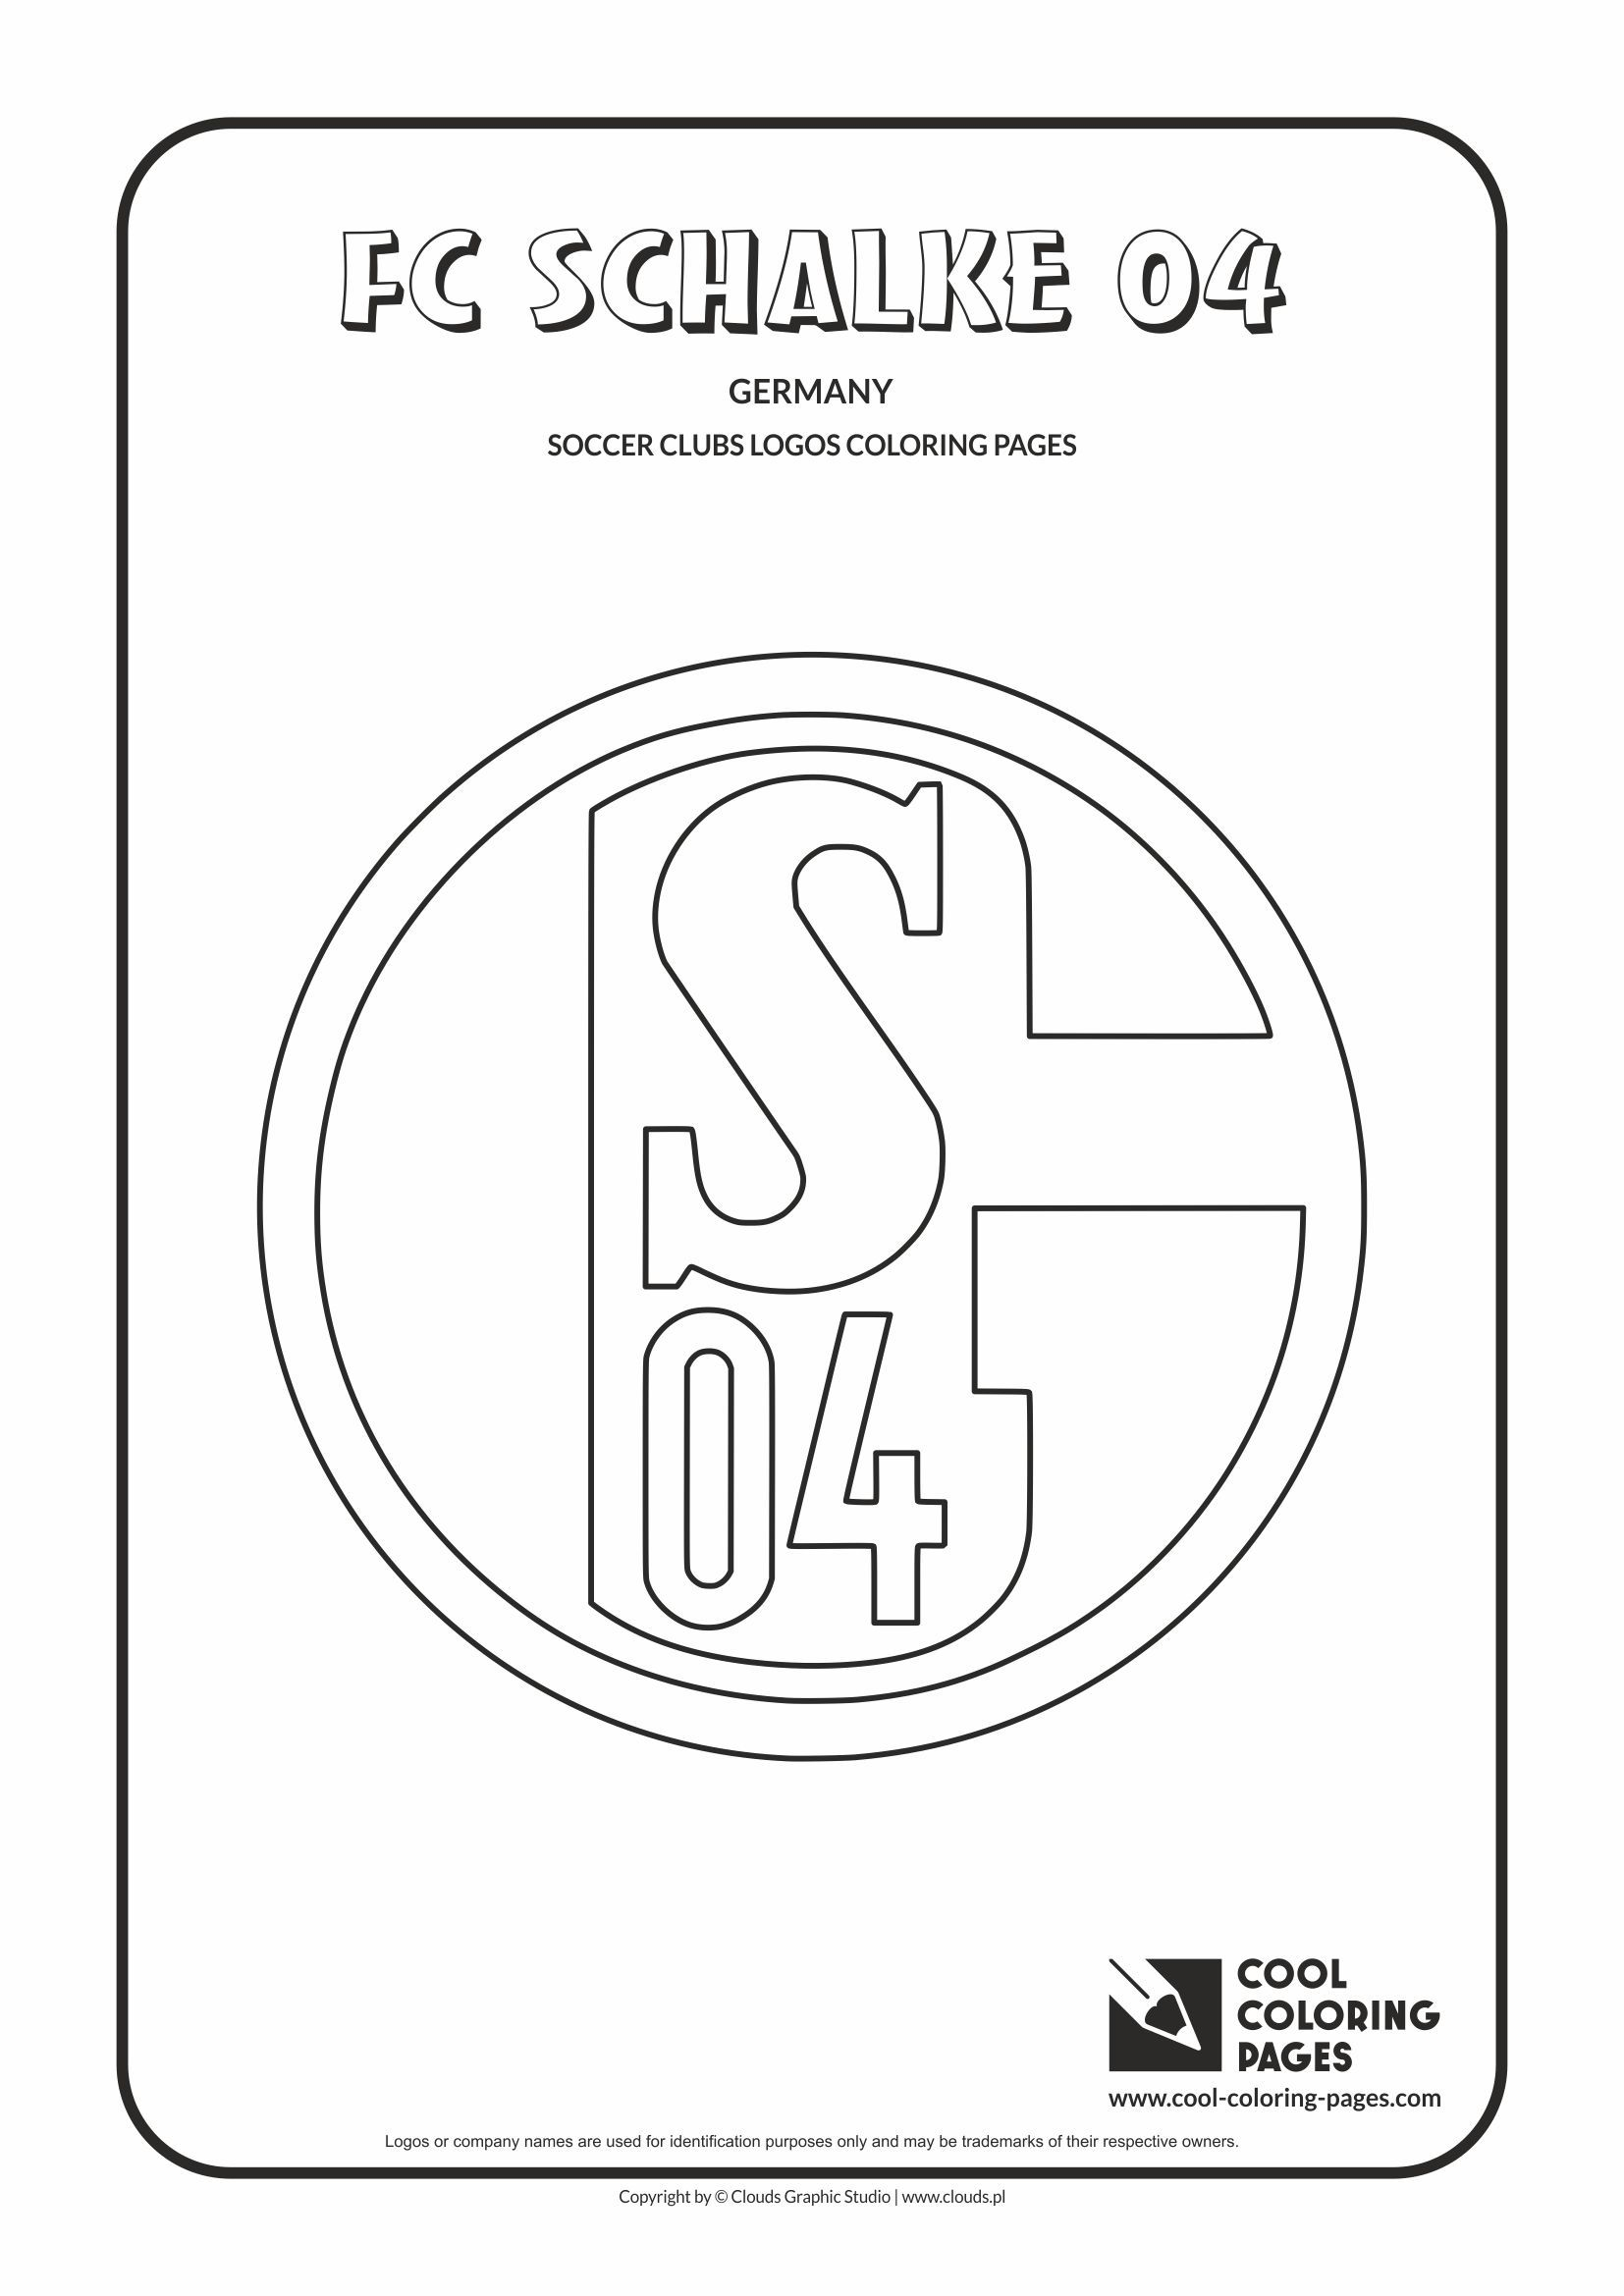 FC Schalke 04 logo coloring / Coloring page with FC Schalke 04